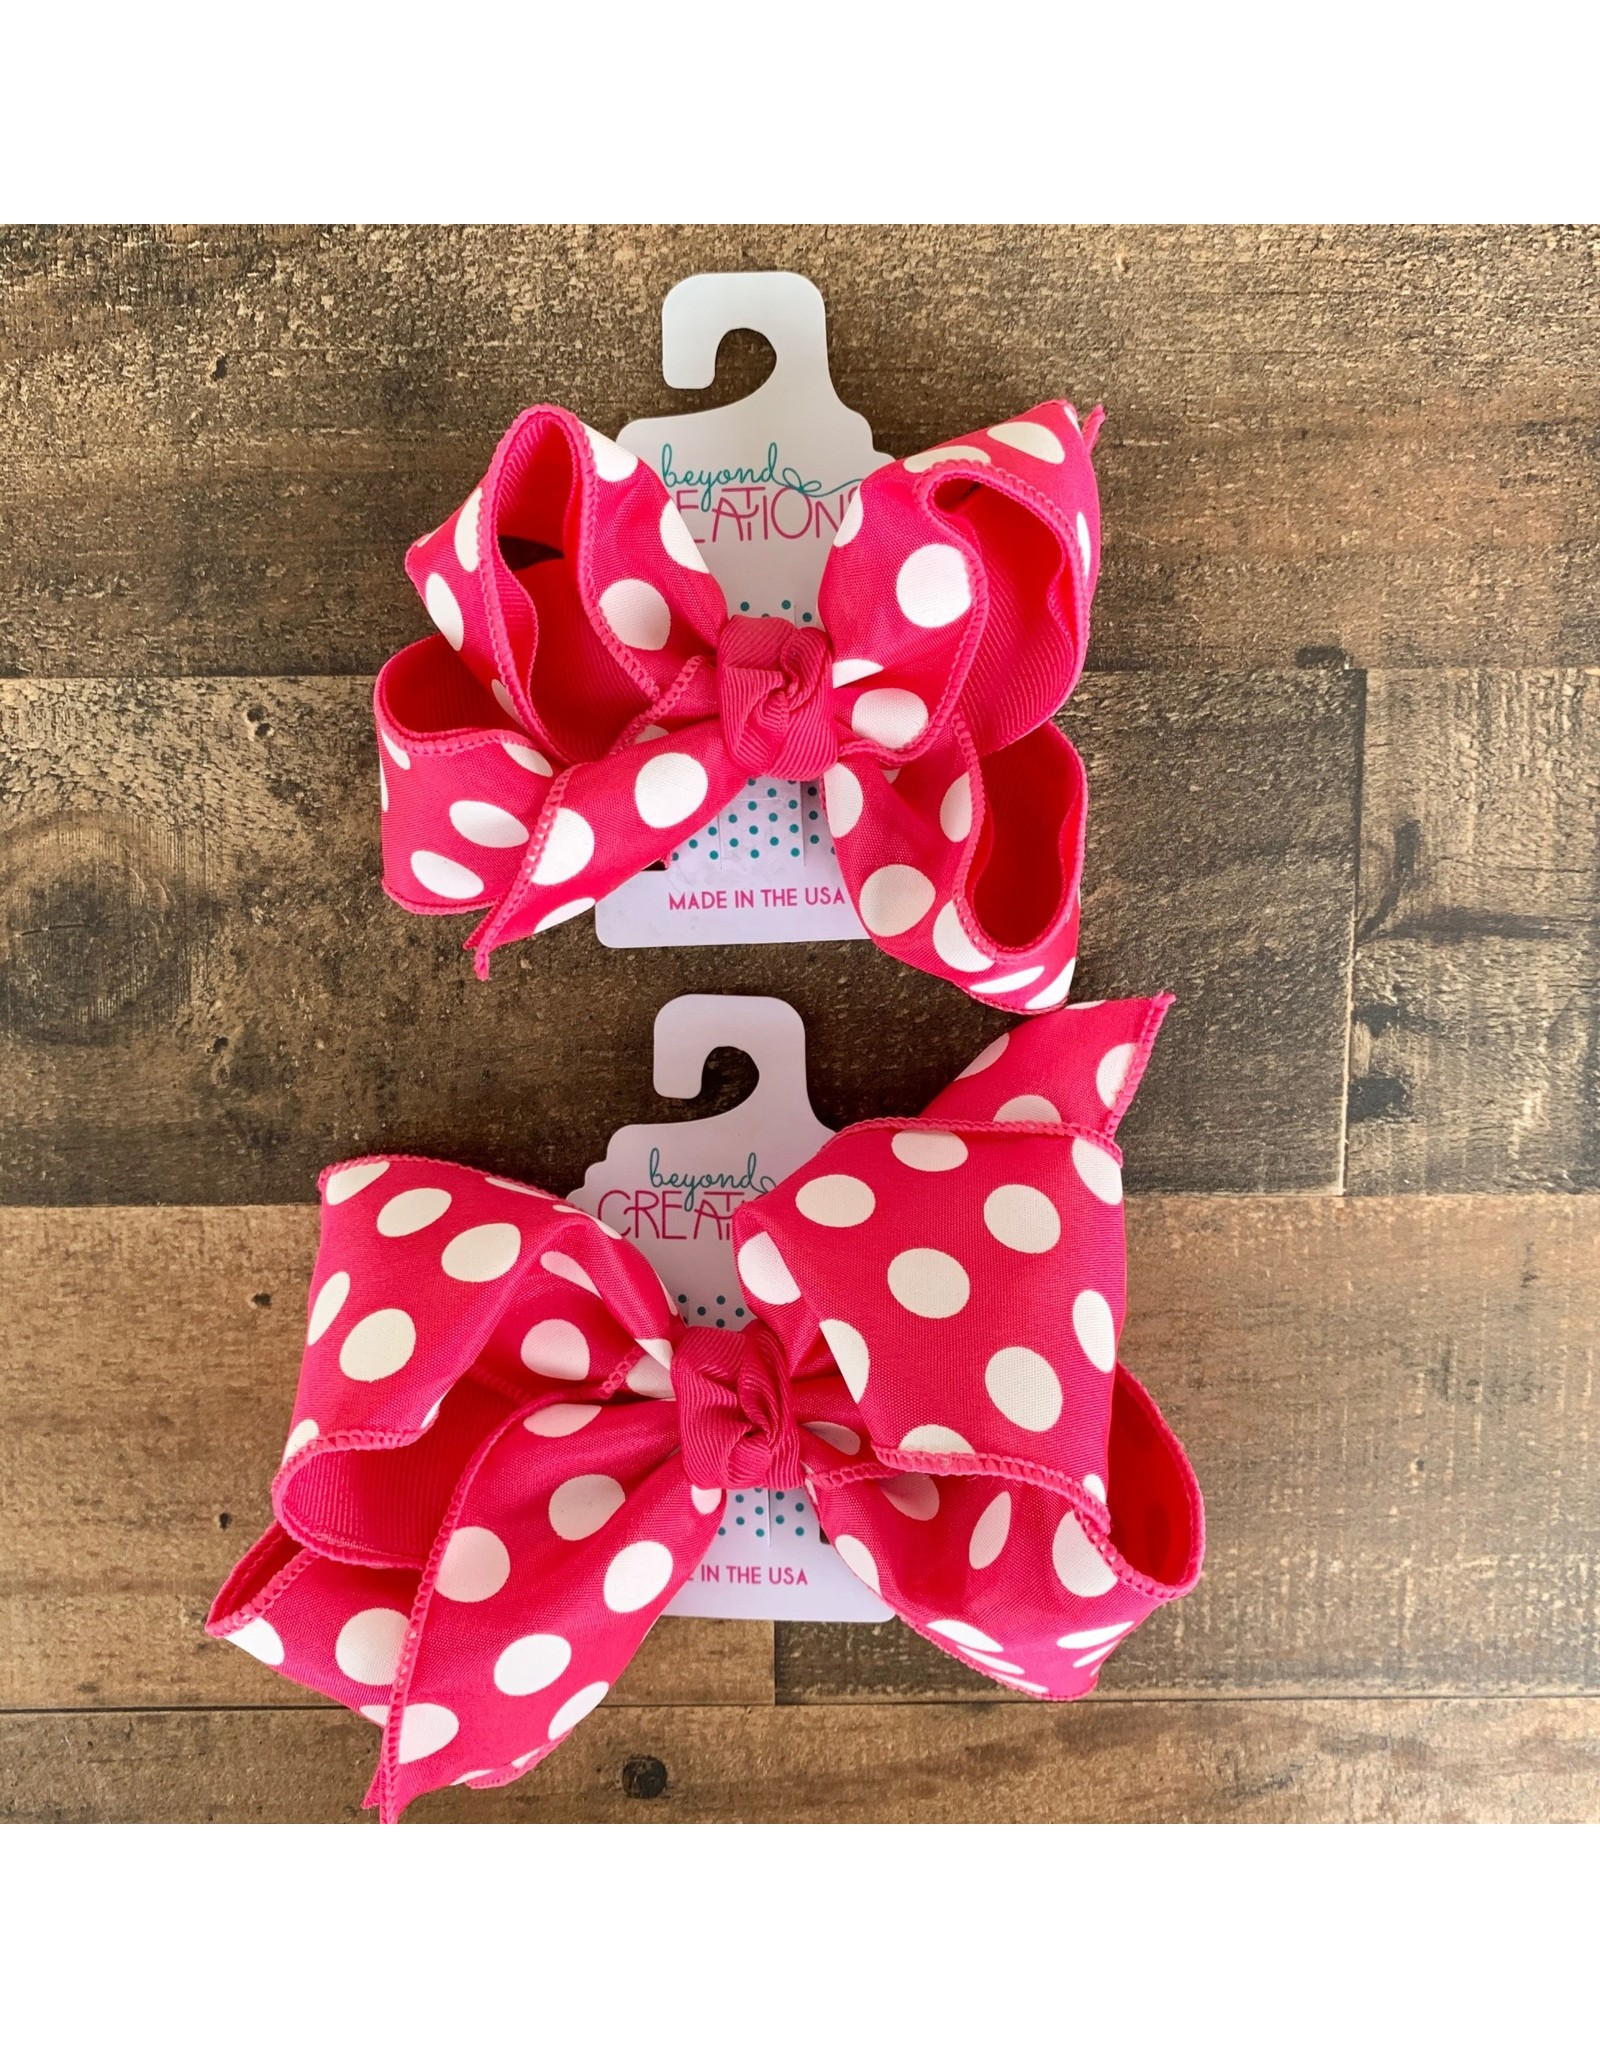 Beyond Creations Beyond Creations- Layered Fuschia/Fuschia Knot Bow